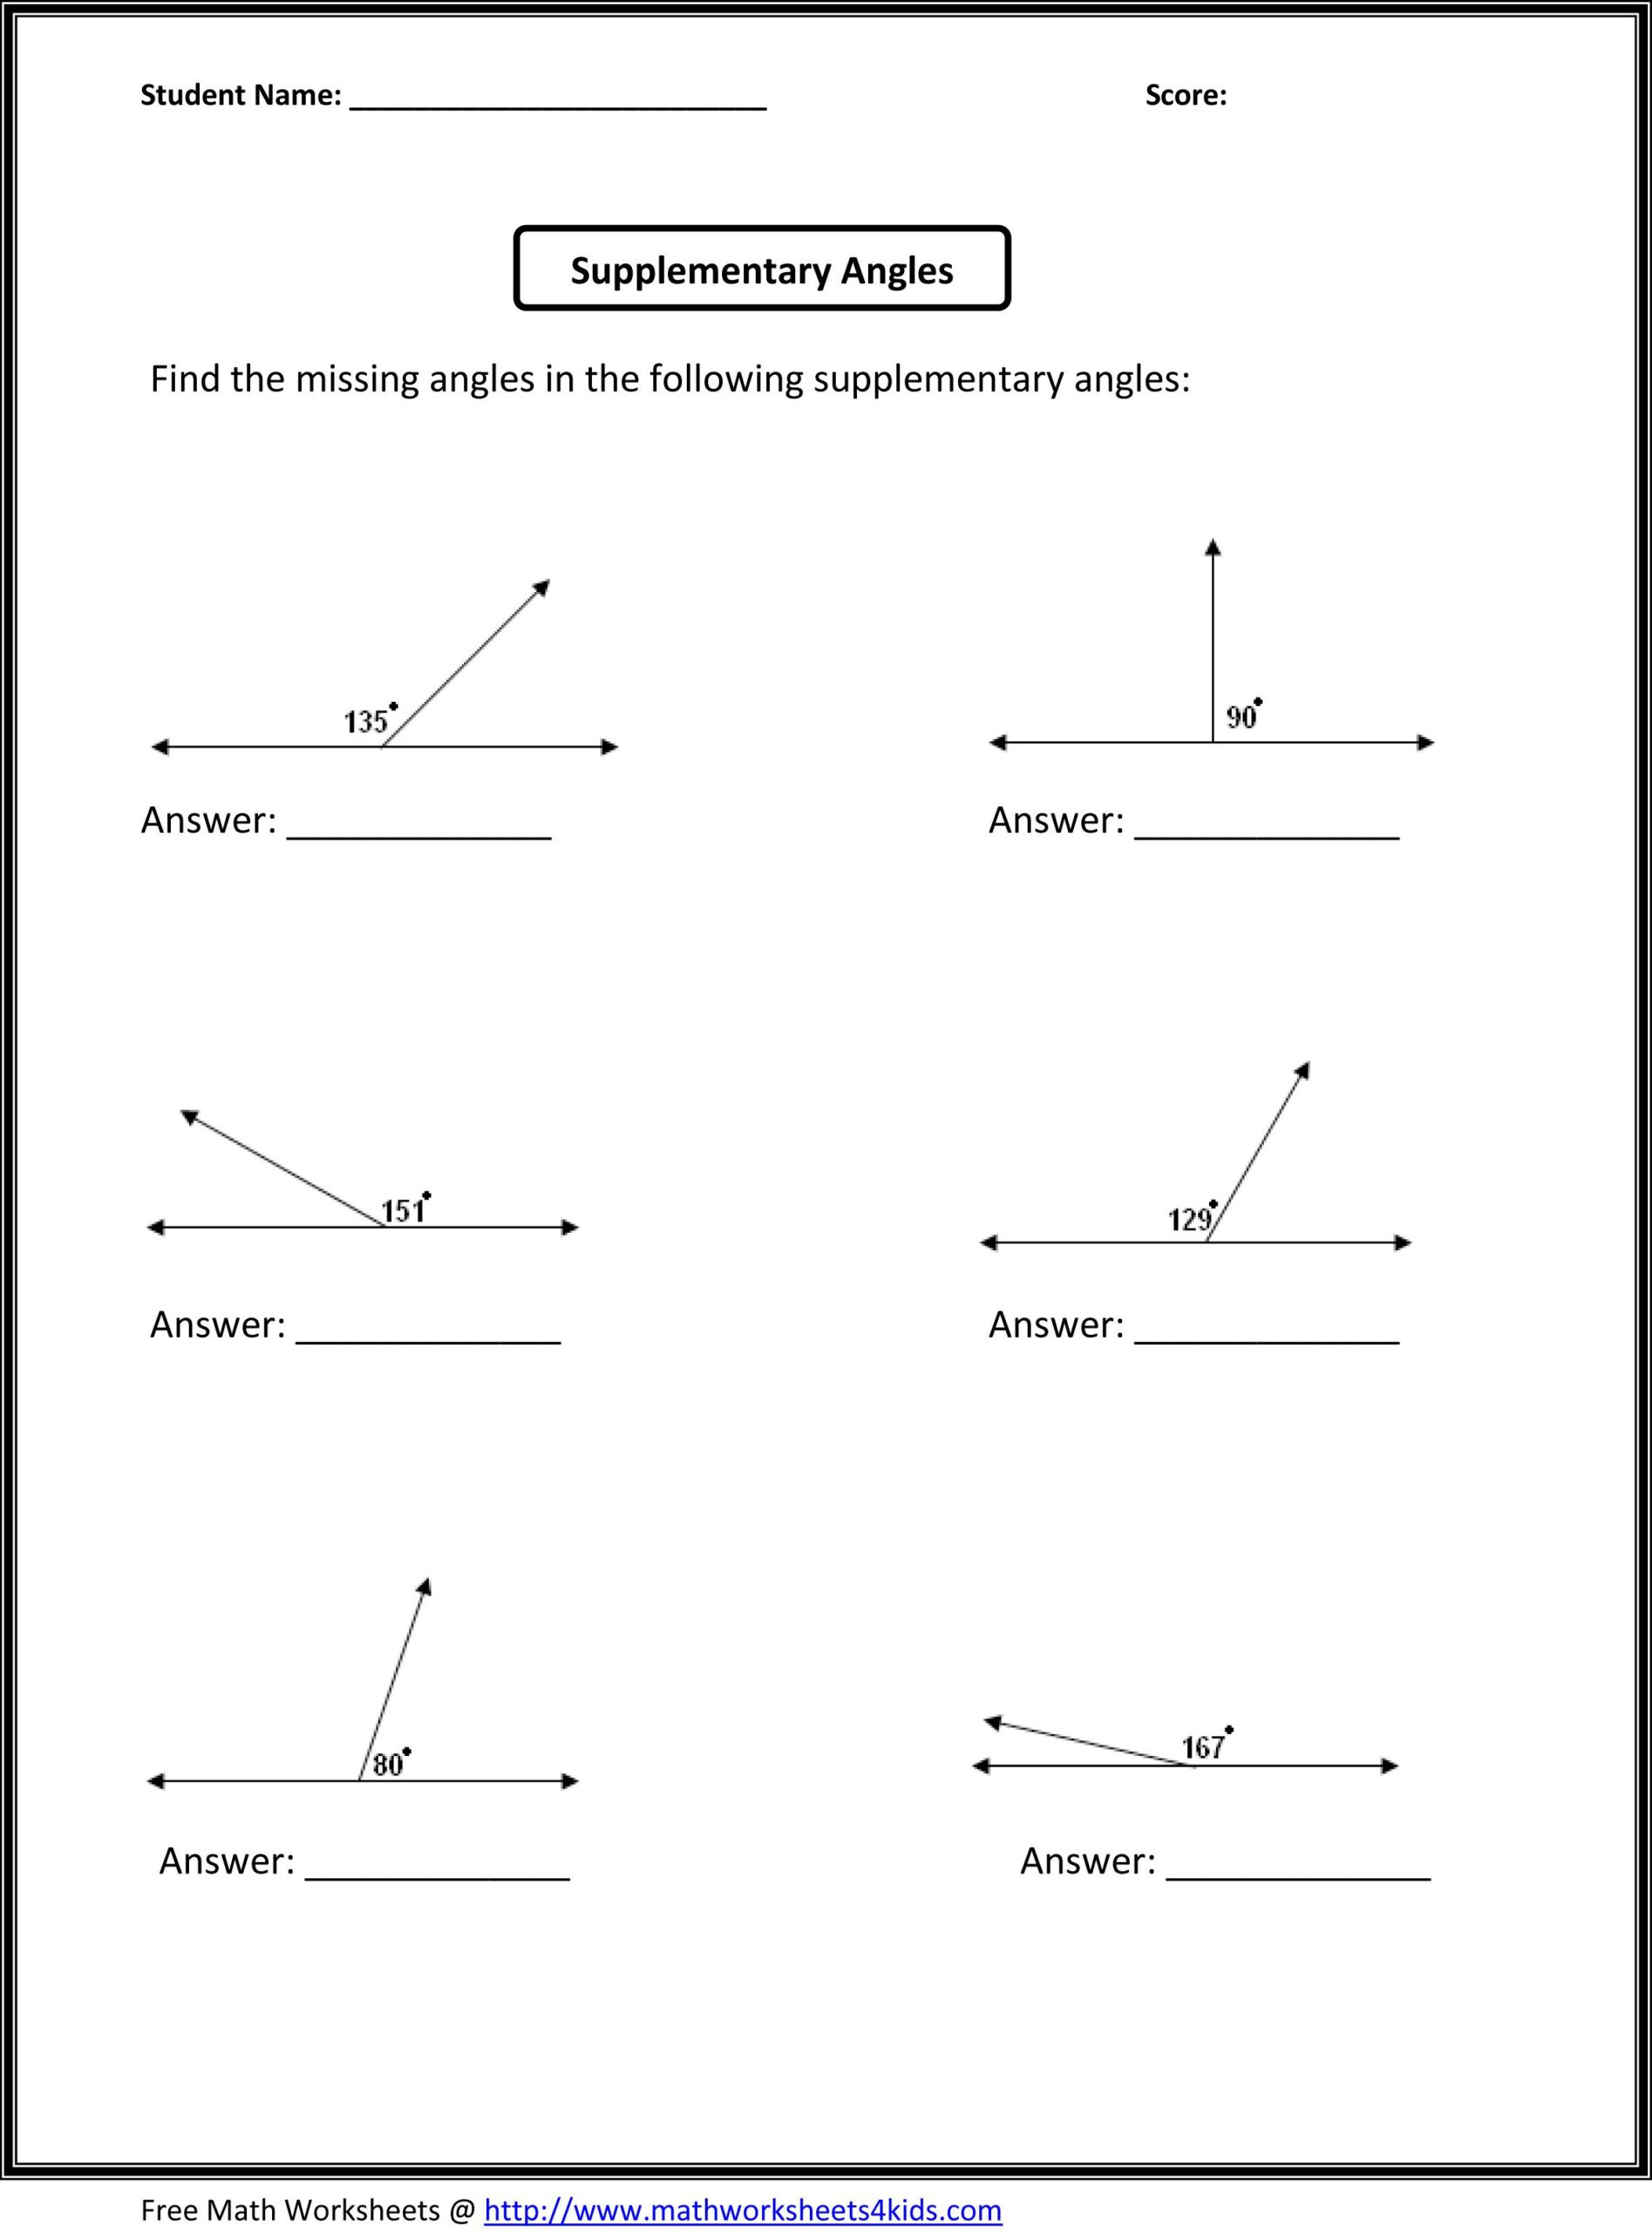 Finding Missing Angles Worksheet Supplementary Angles Math Worksheets Free for Six Graders